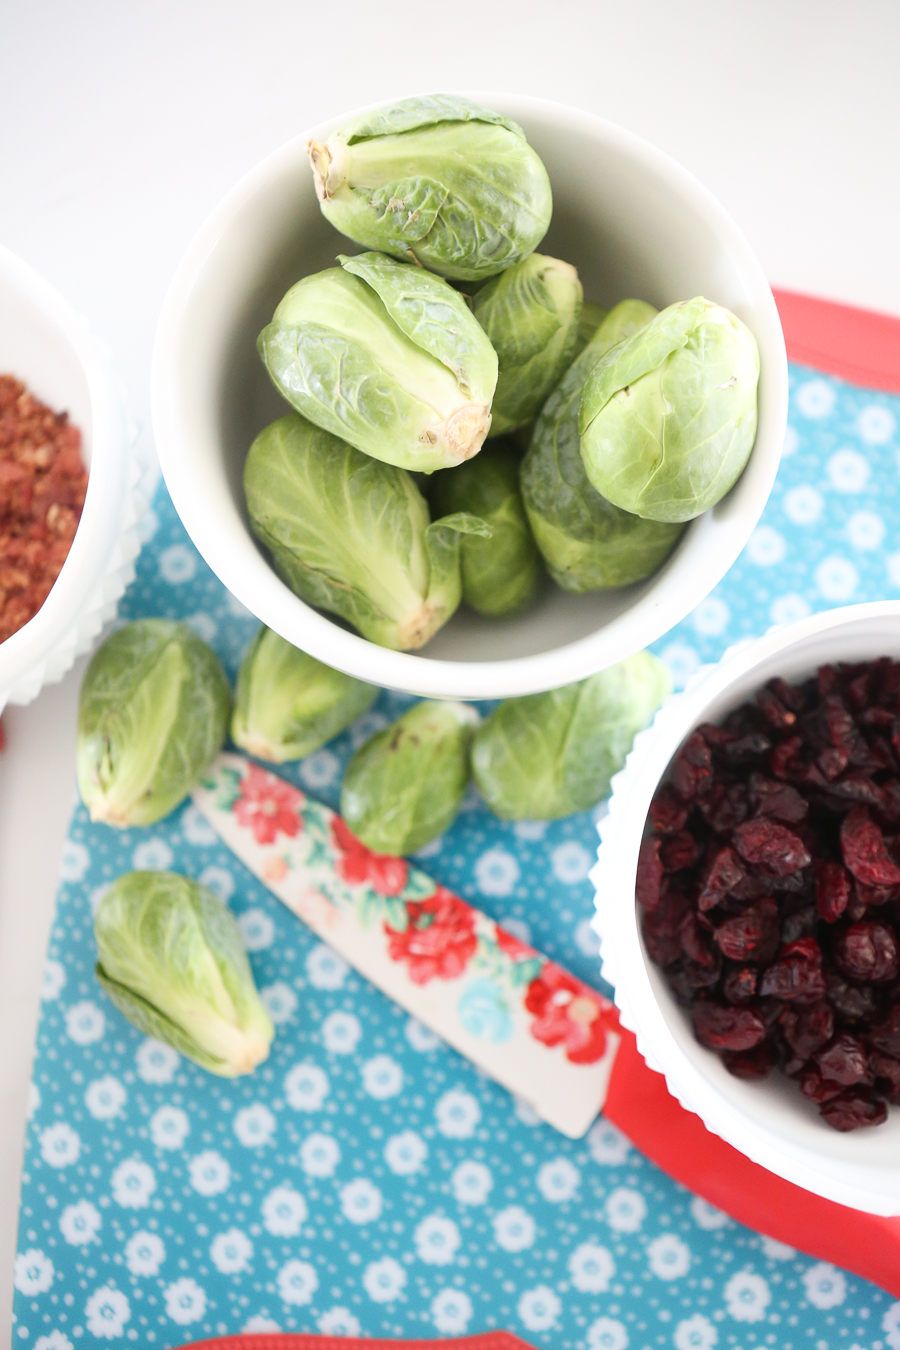 CC and Mike's Extra Crispy Candied Brussel Sprouts Recipe